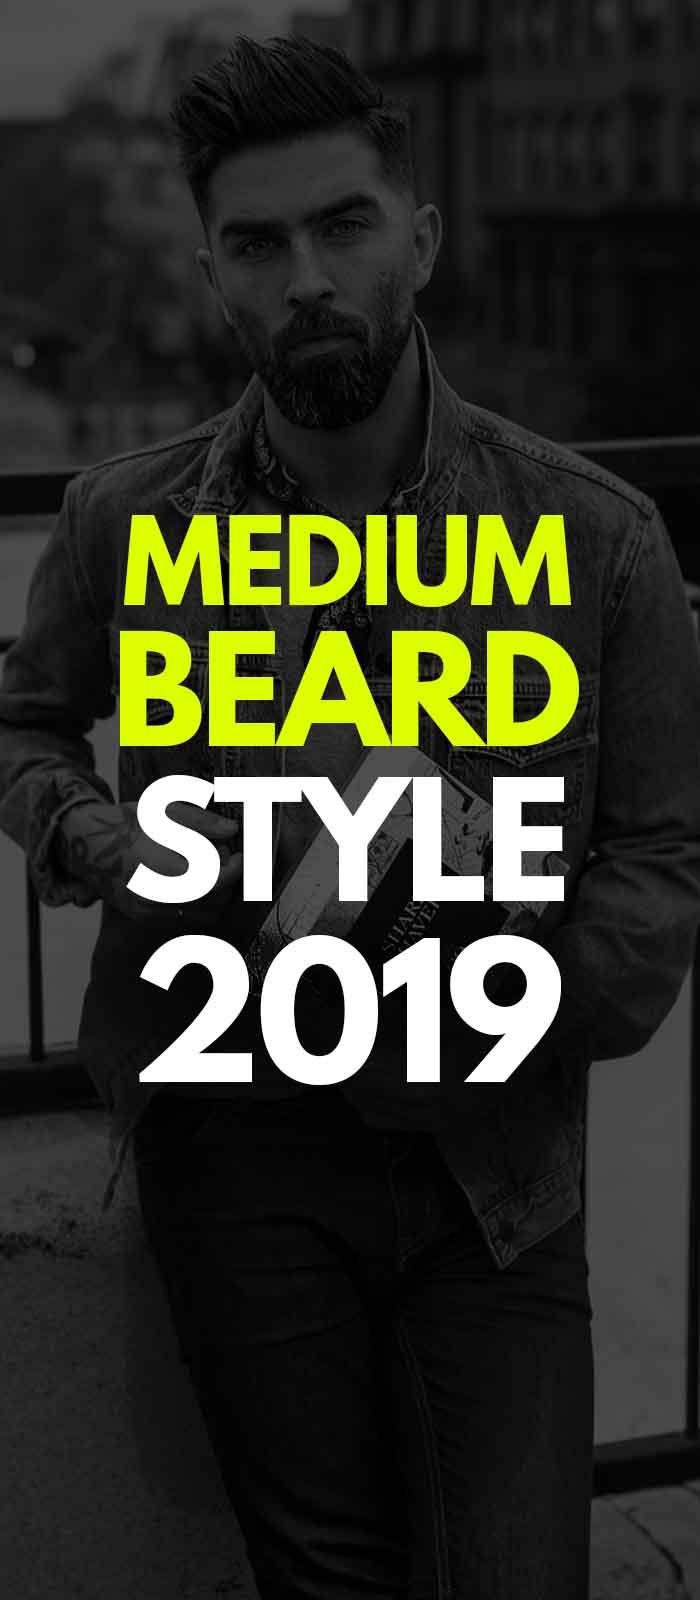 125 Best Haircuts For Men In 2020 Ultimate Guide: 14 Reasons Why The Medium Beard Style Is All The Funk! In